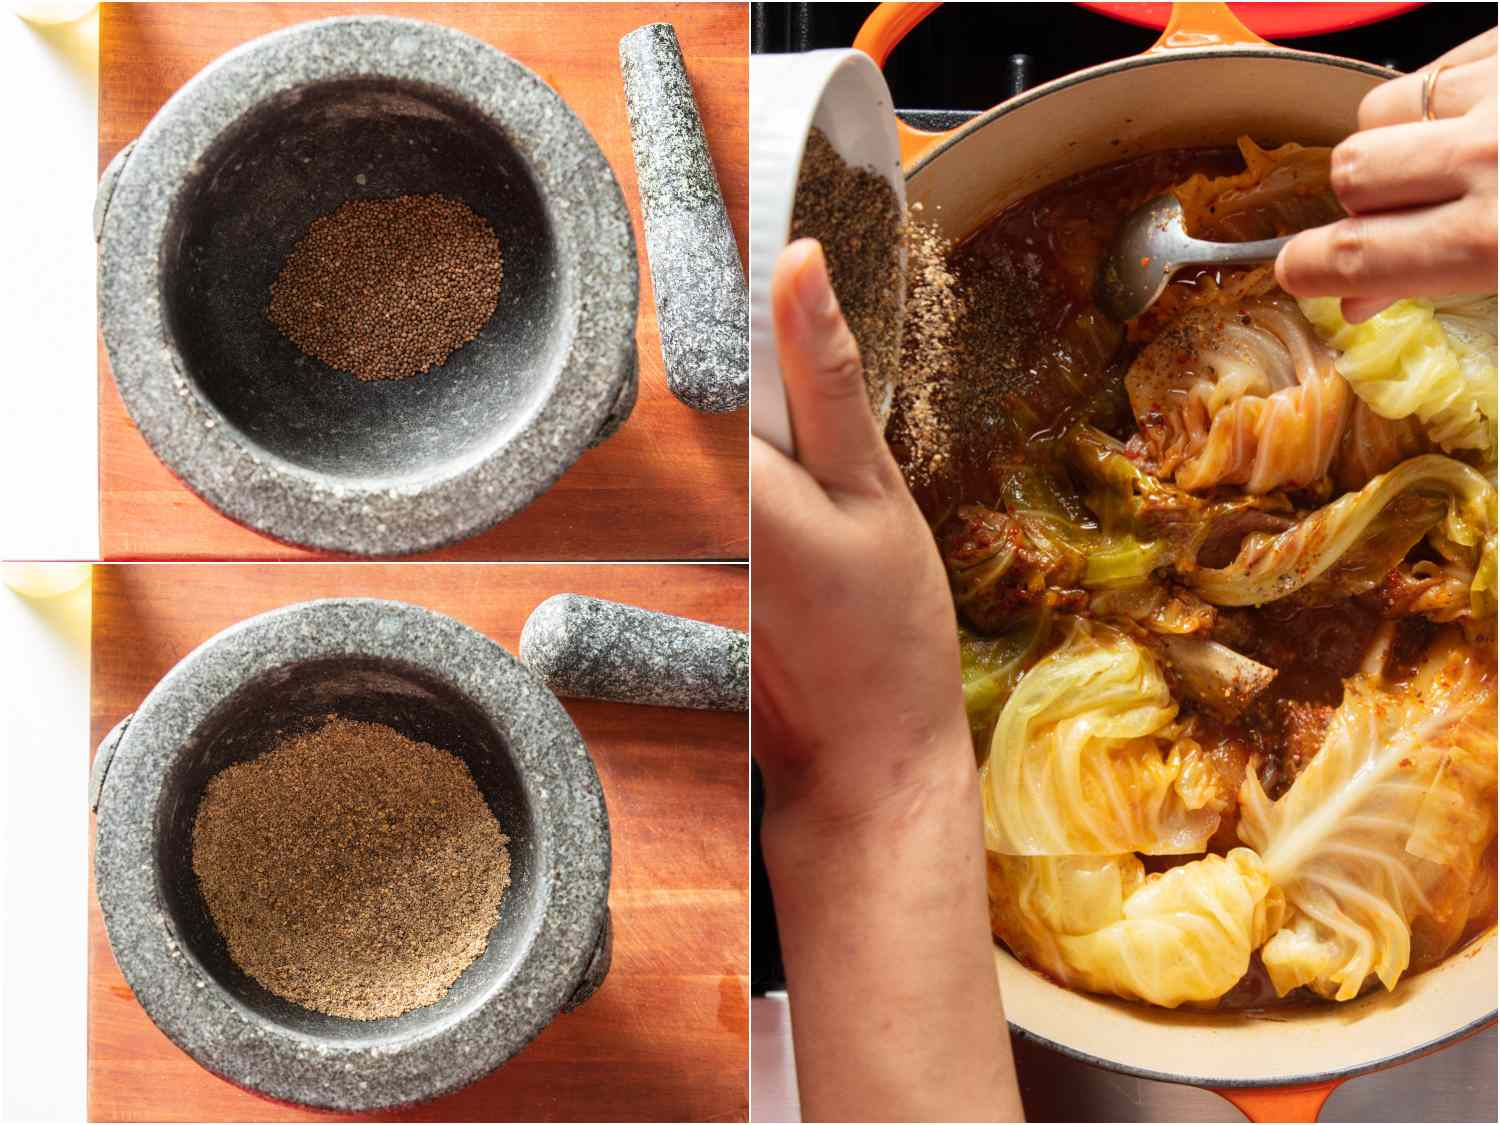 Crushing perilla seeds in a mortar and pestle and adding to stew.